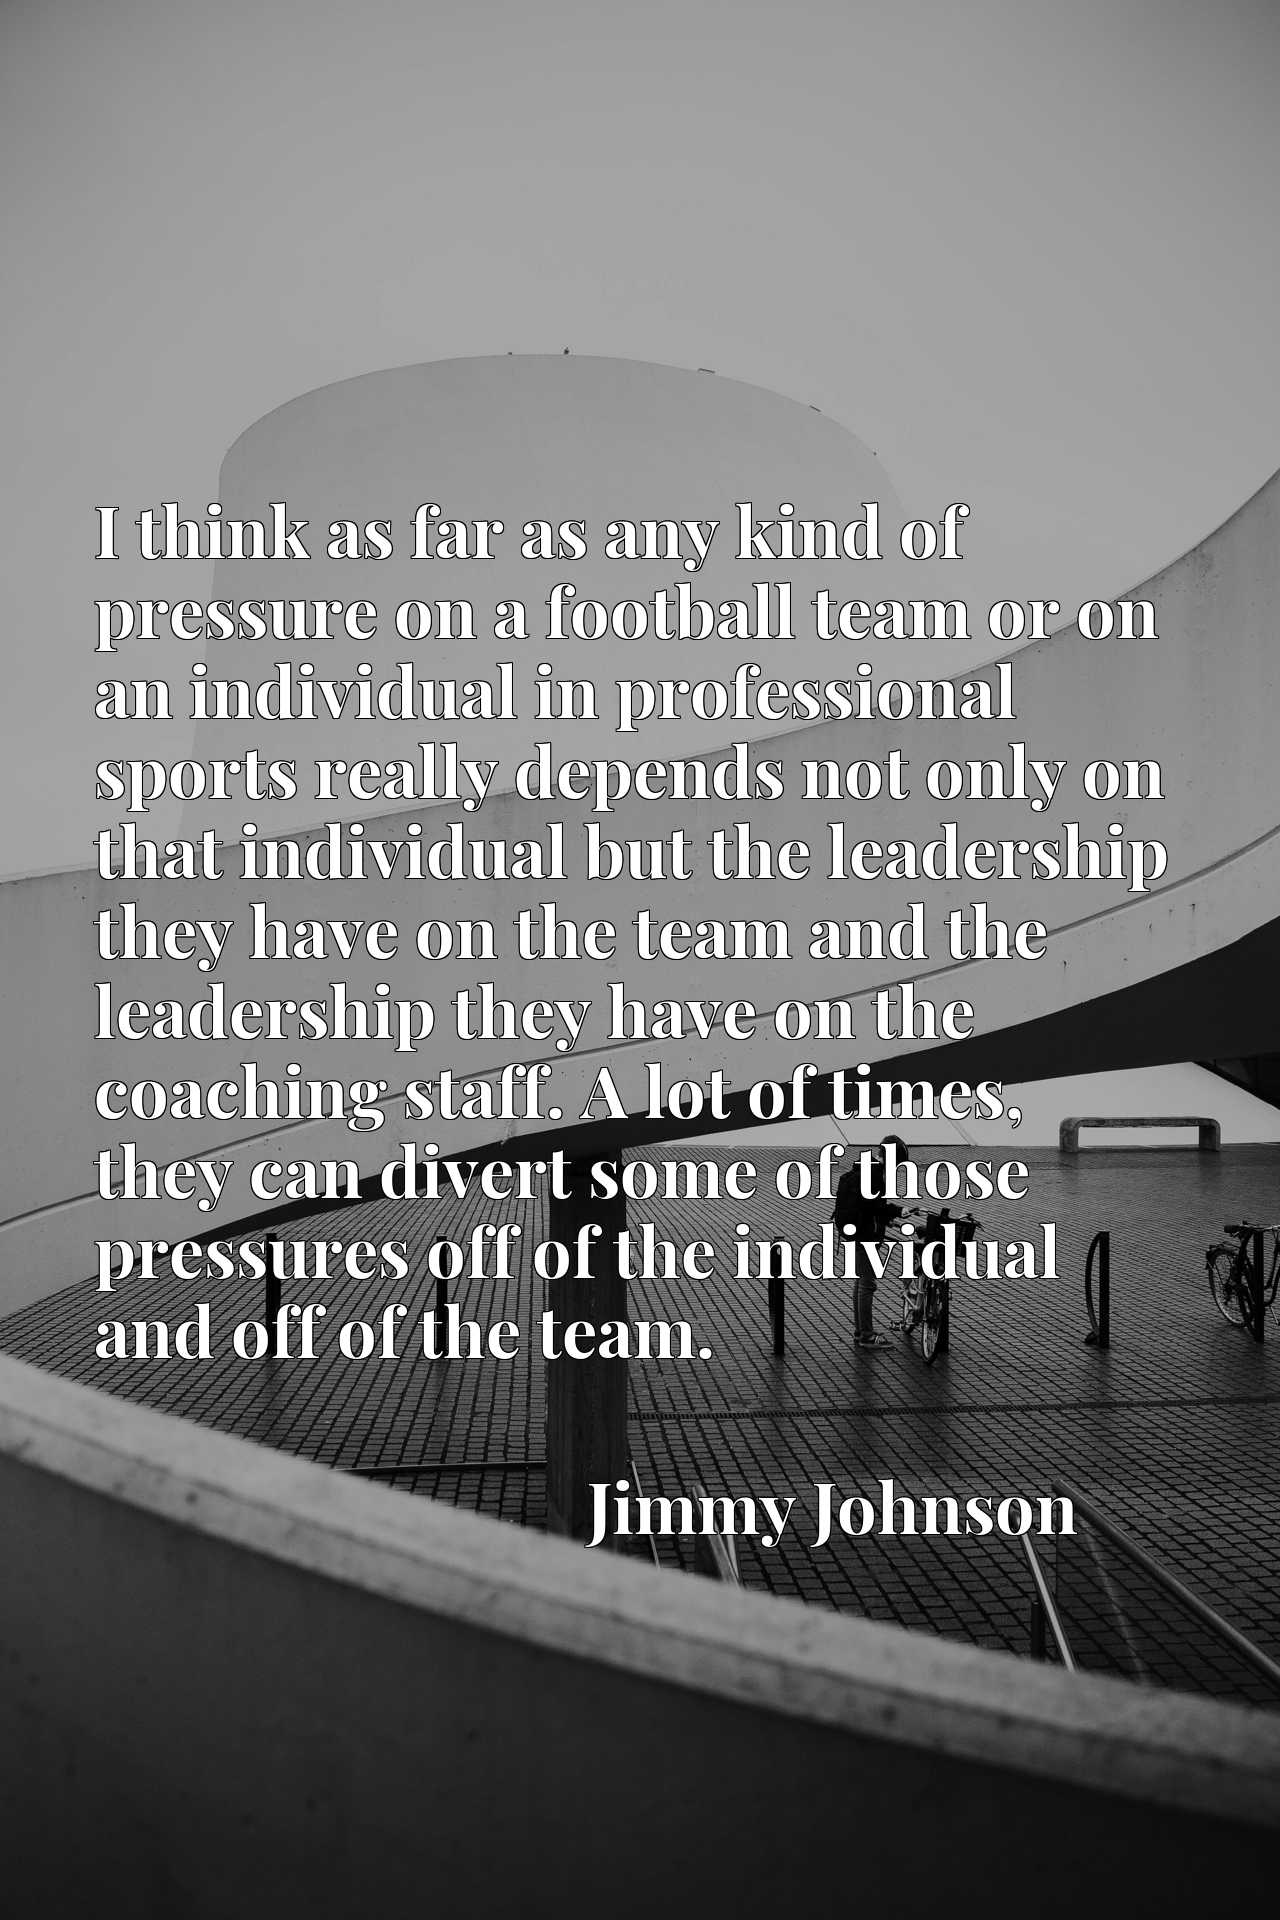 I think as far as any kind of pressure on a football team or on an individual in professional sports really depends not only on that individual but the leadership they have on the team and the leadership they have on the coaching staff. A lot of times, they can divert some of those pressures off of the individual and off of the team.